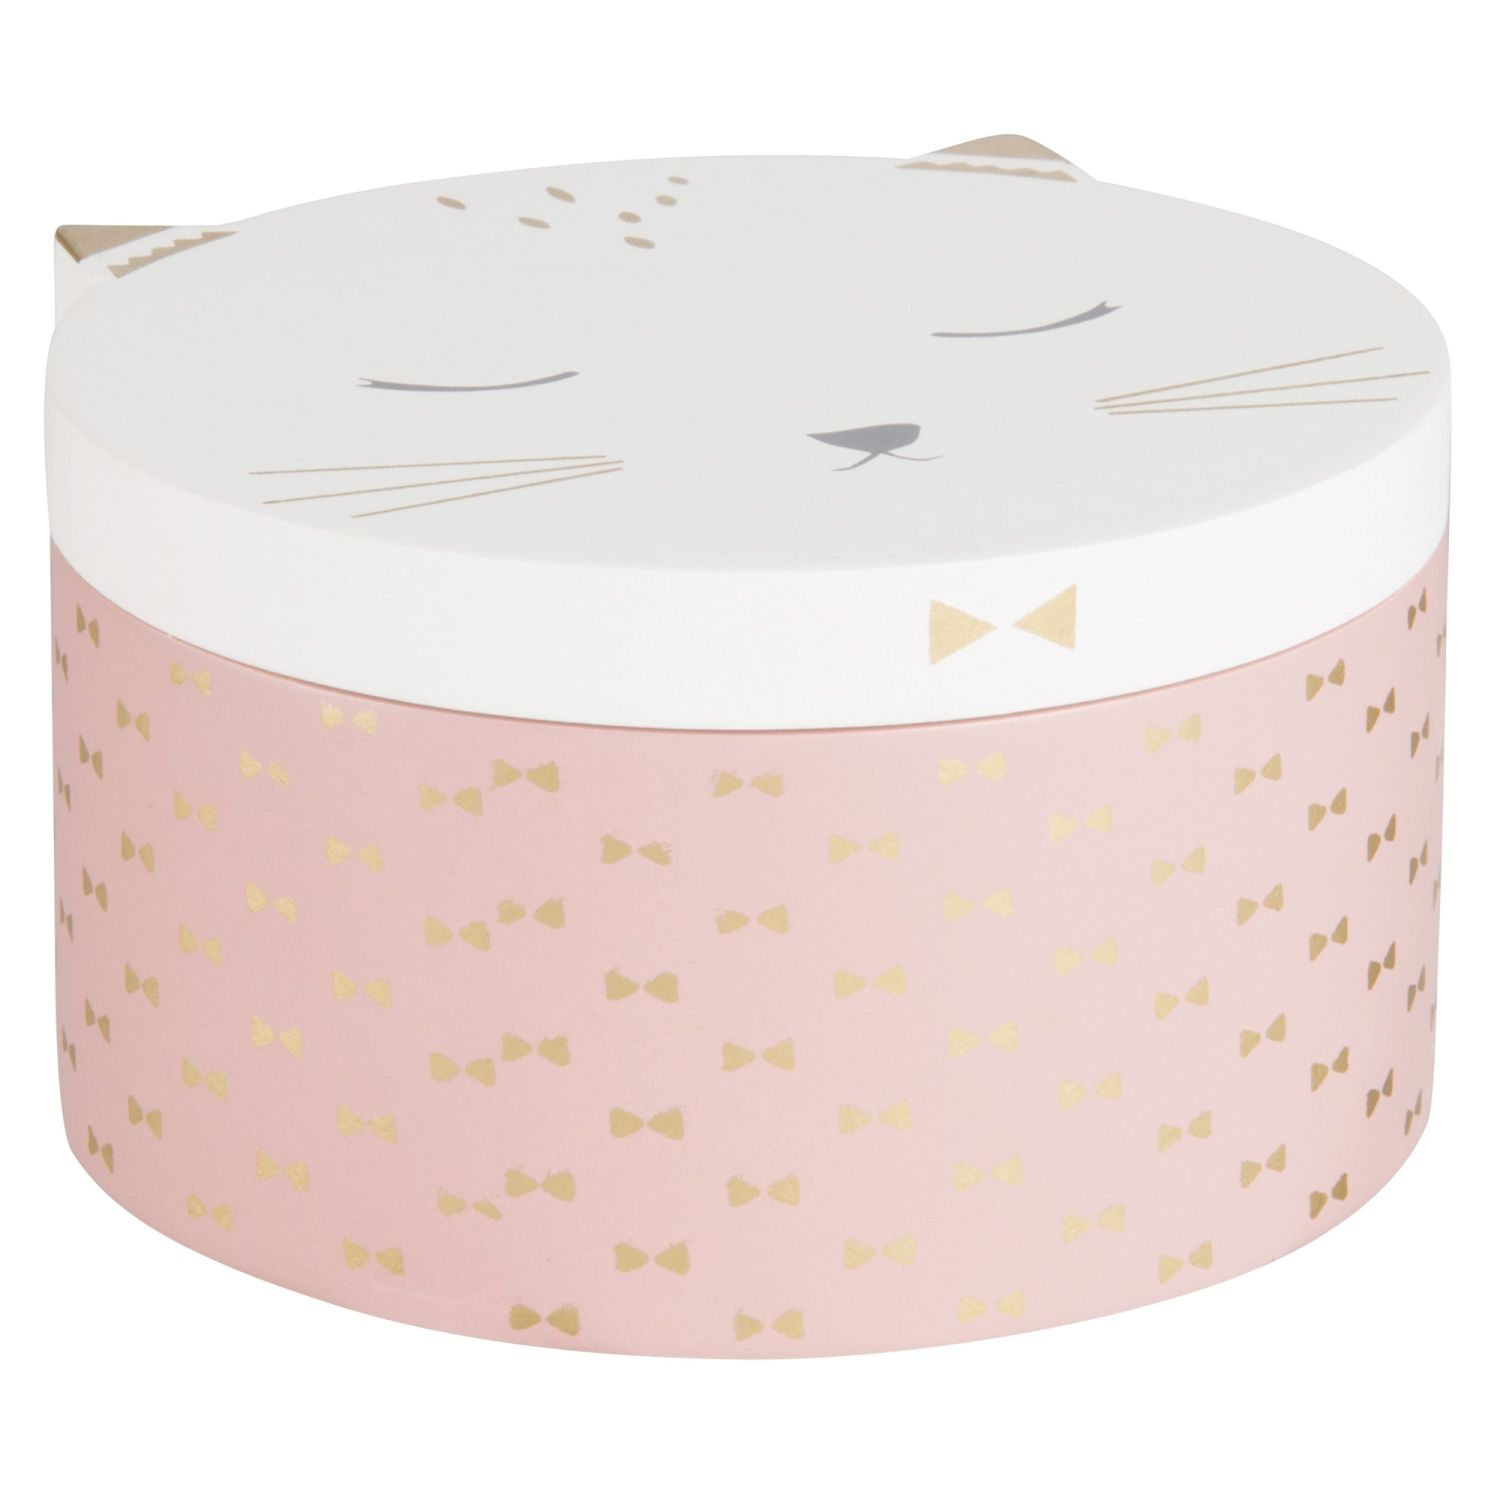 Maisons Du Monde Jewellery Box Pink And White Cat Jewellery Box Maisons Du Monde